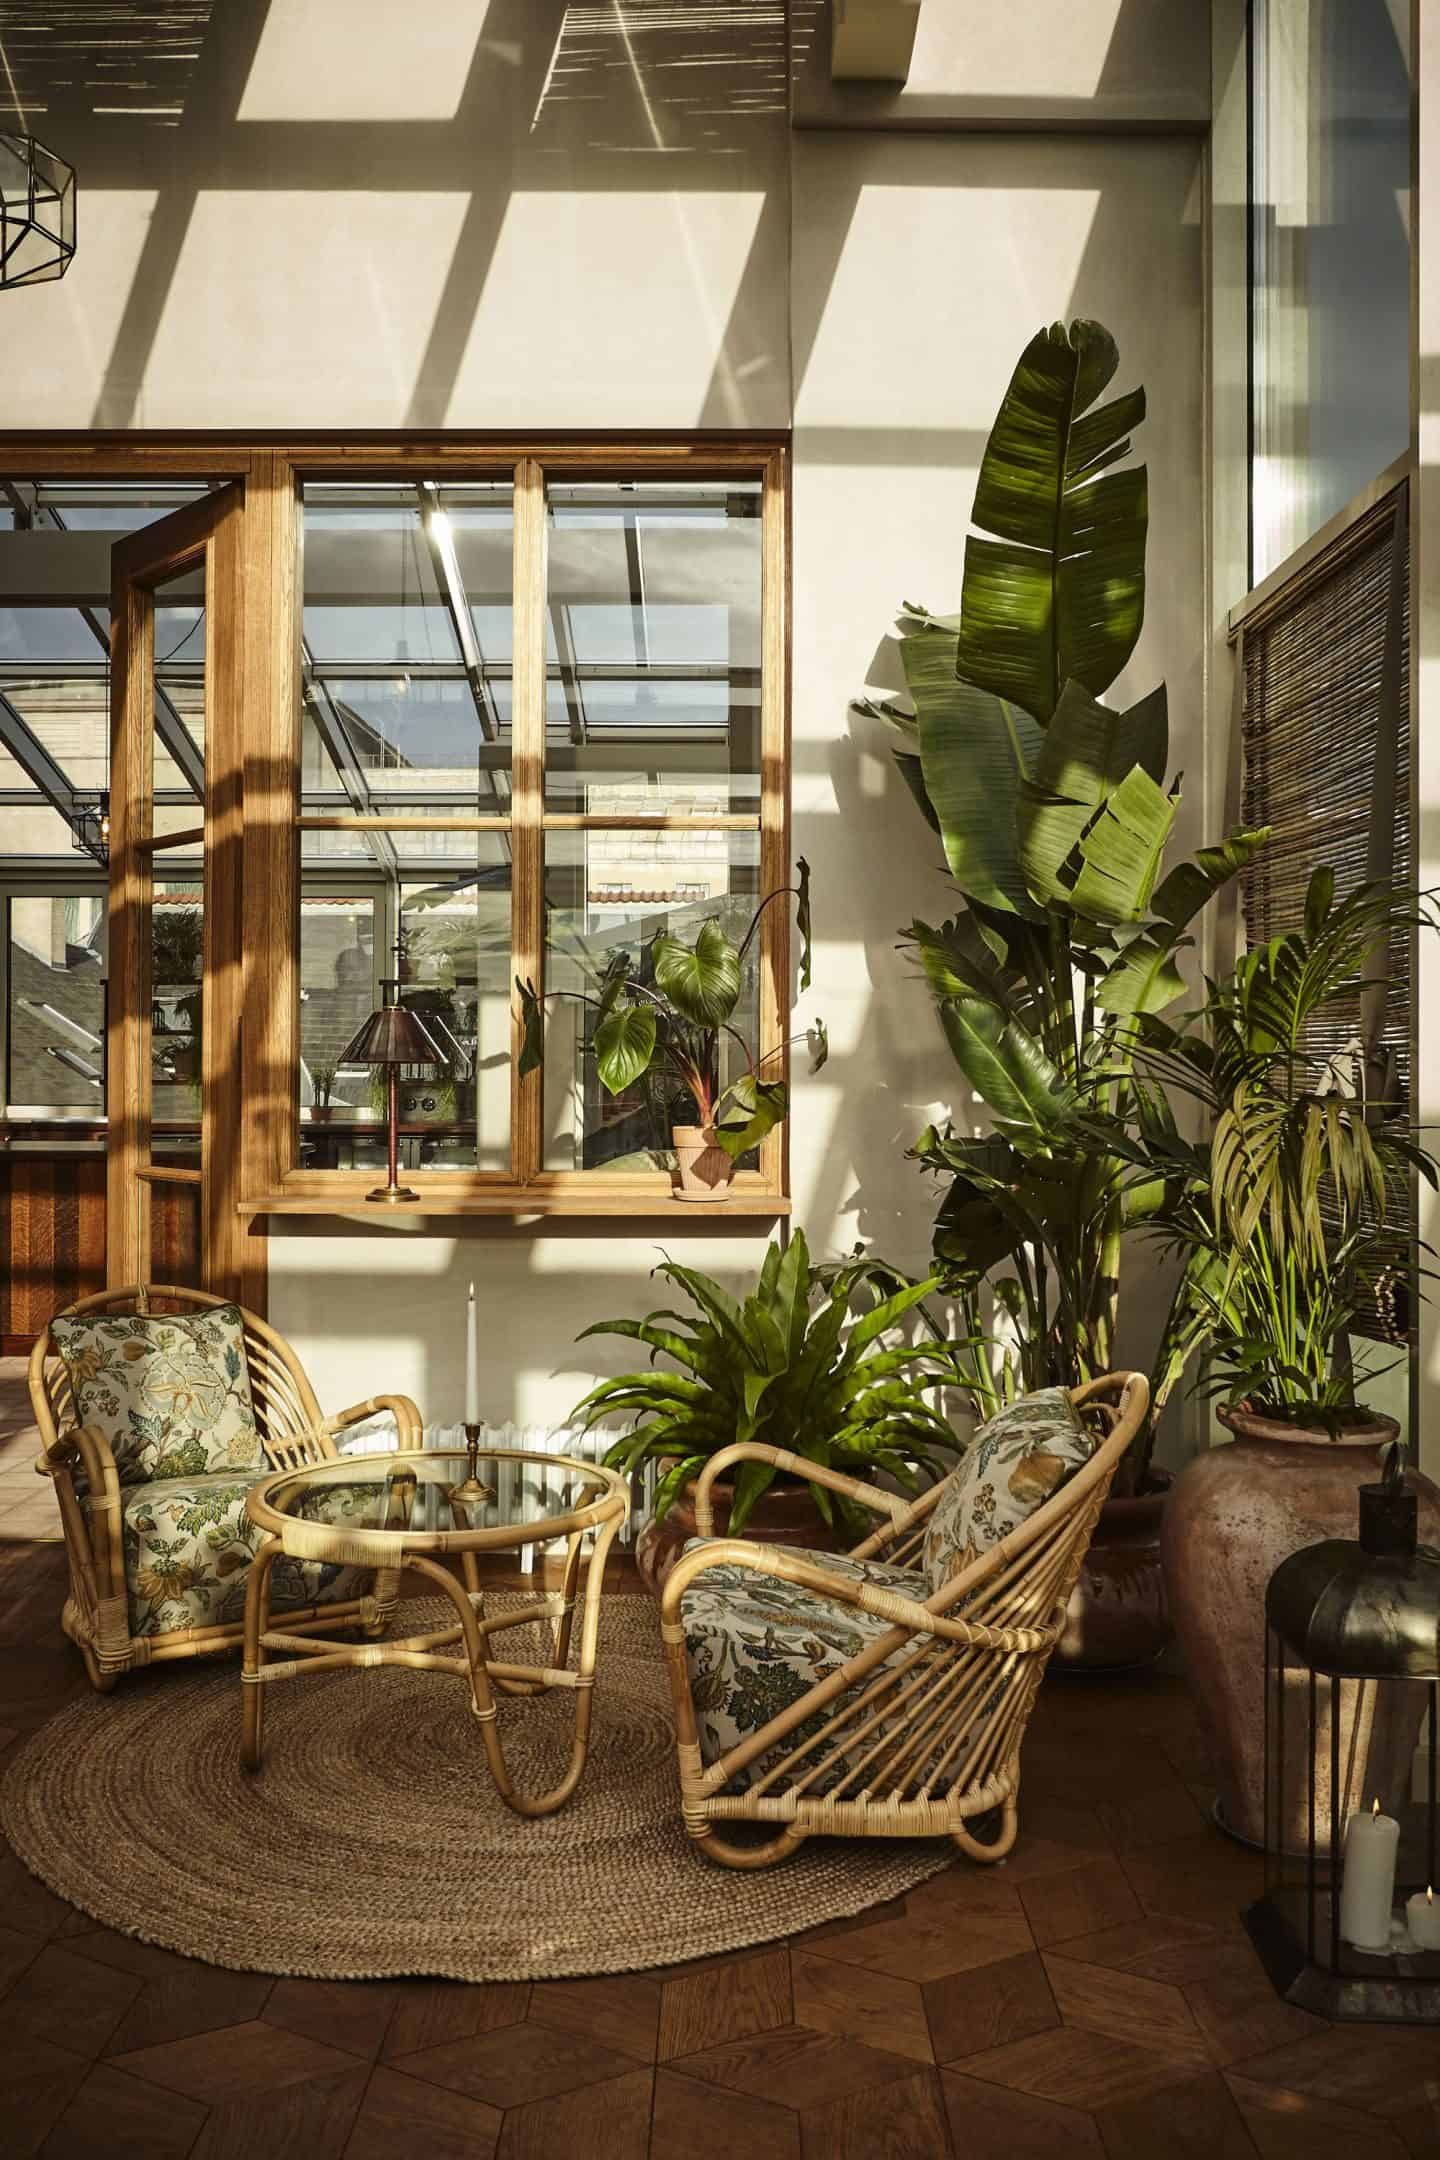 Sander Hotel, a design hotel in copenhagen. The roof terrace is full of plants and has fabulous views over the city